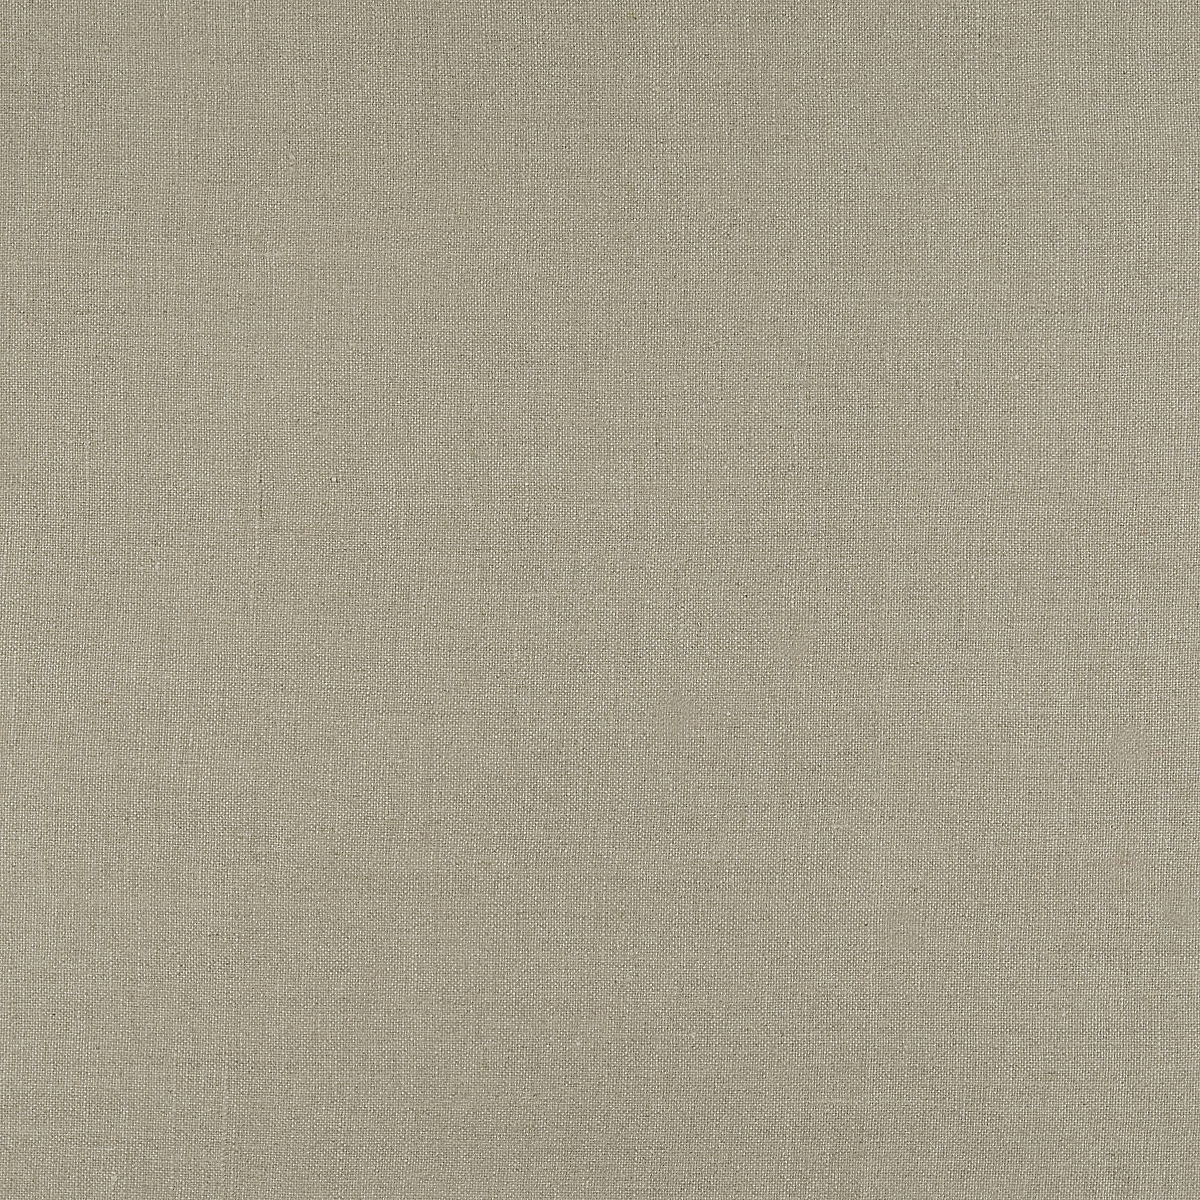 Beach House Linen: Bark (fabric yardage)